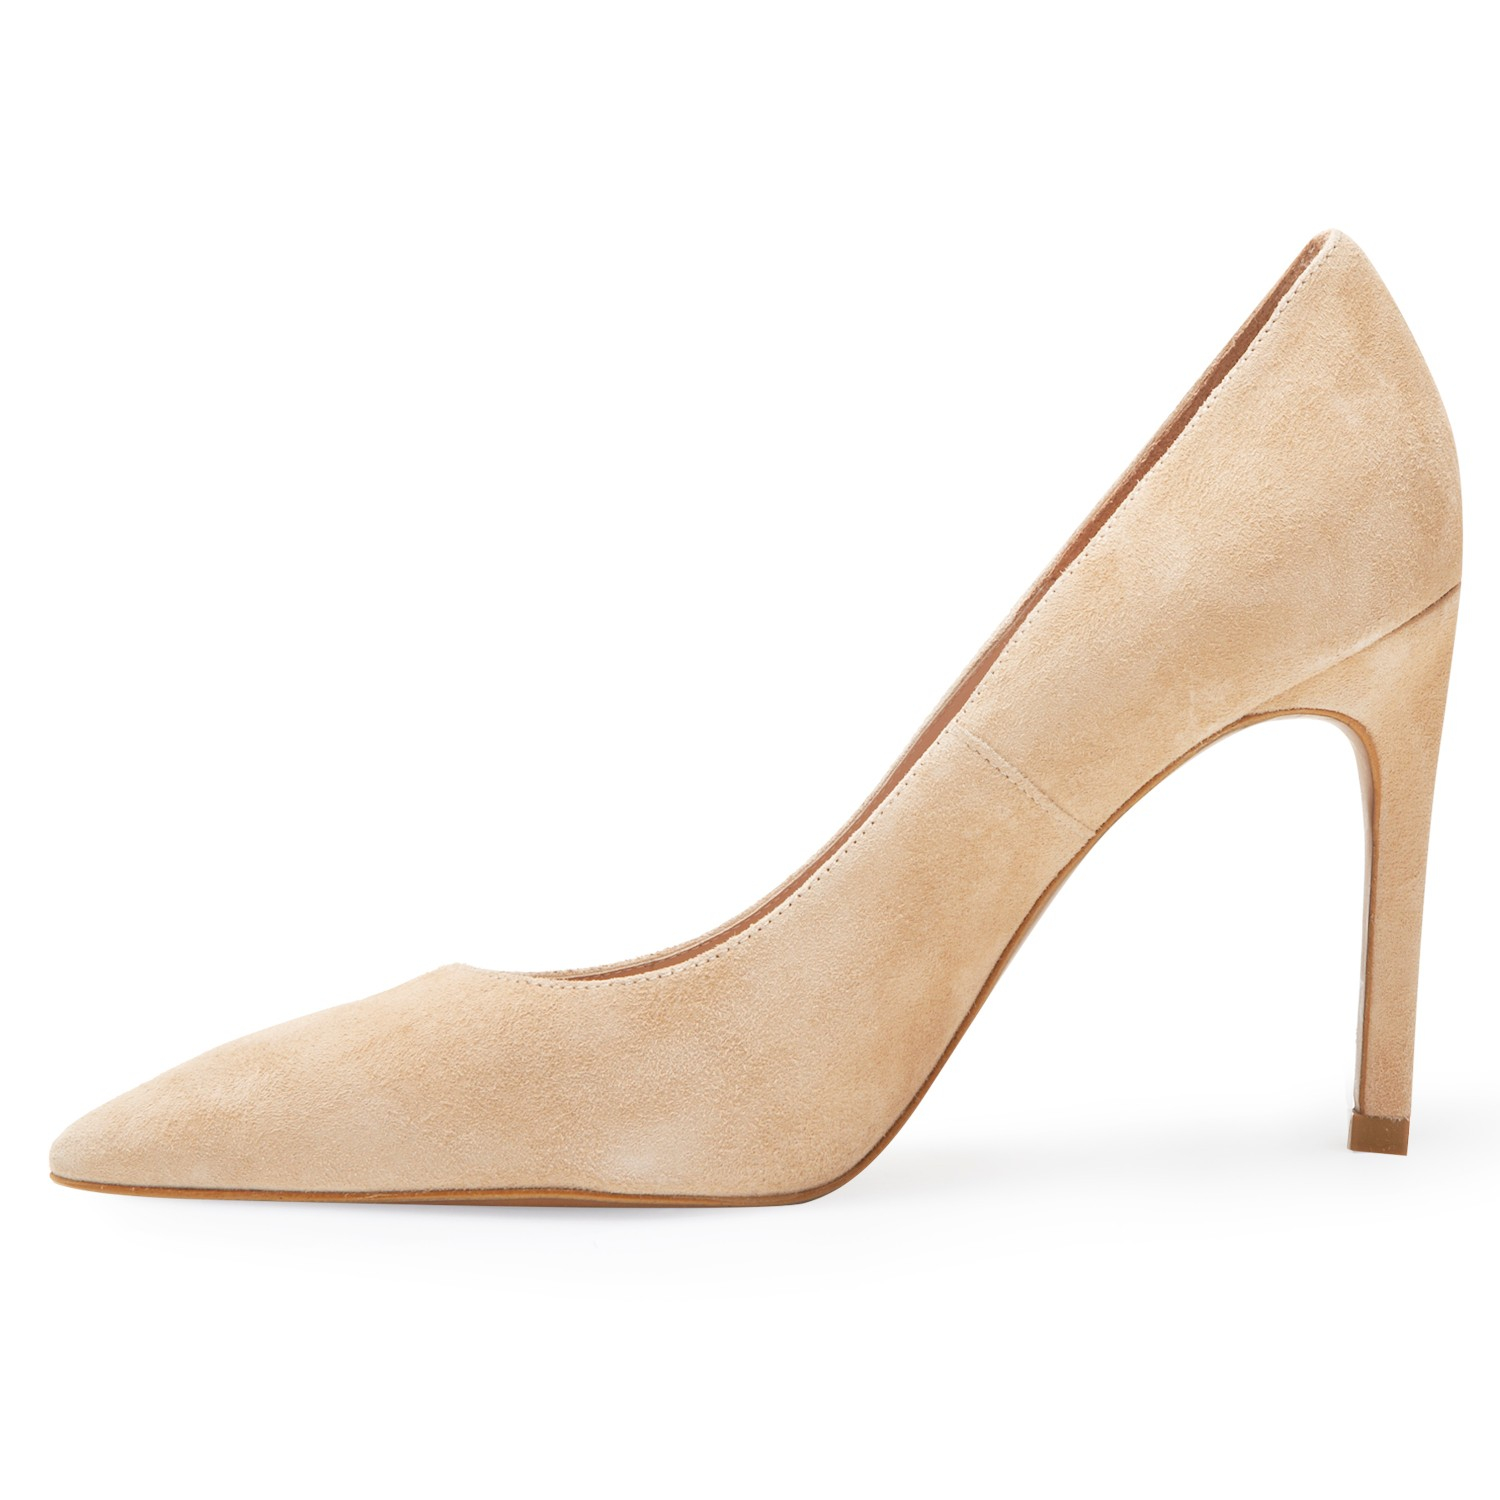 f975d717537e8 Whistles Cornel High Heeled Stiletto Court Shoes in Natural - Lyst